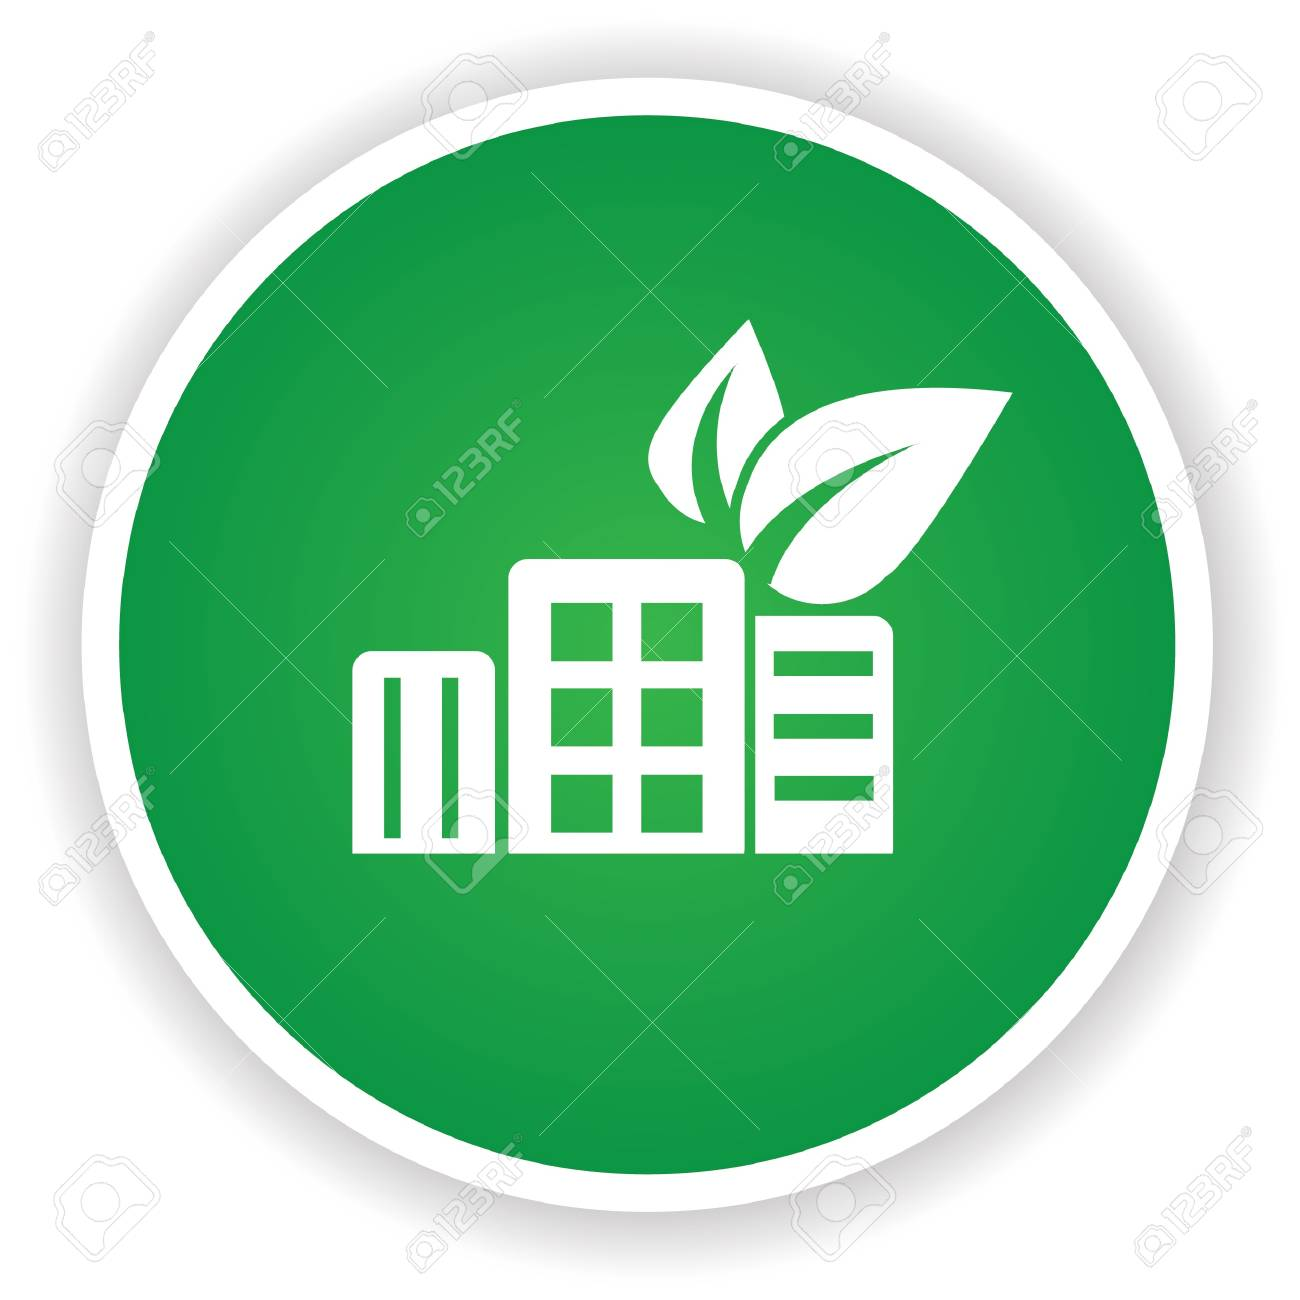 Ecology building symbol on green button royalty free cliparts ecology building symbol on green button stock vector 20437882 biocorpaavc Image collections